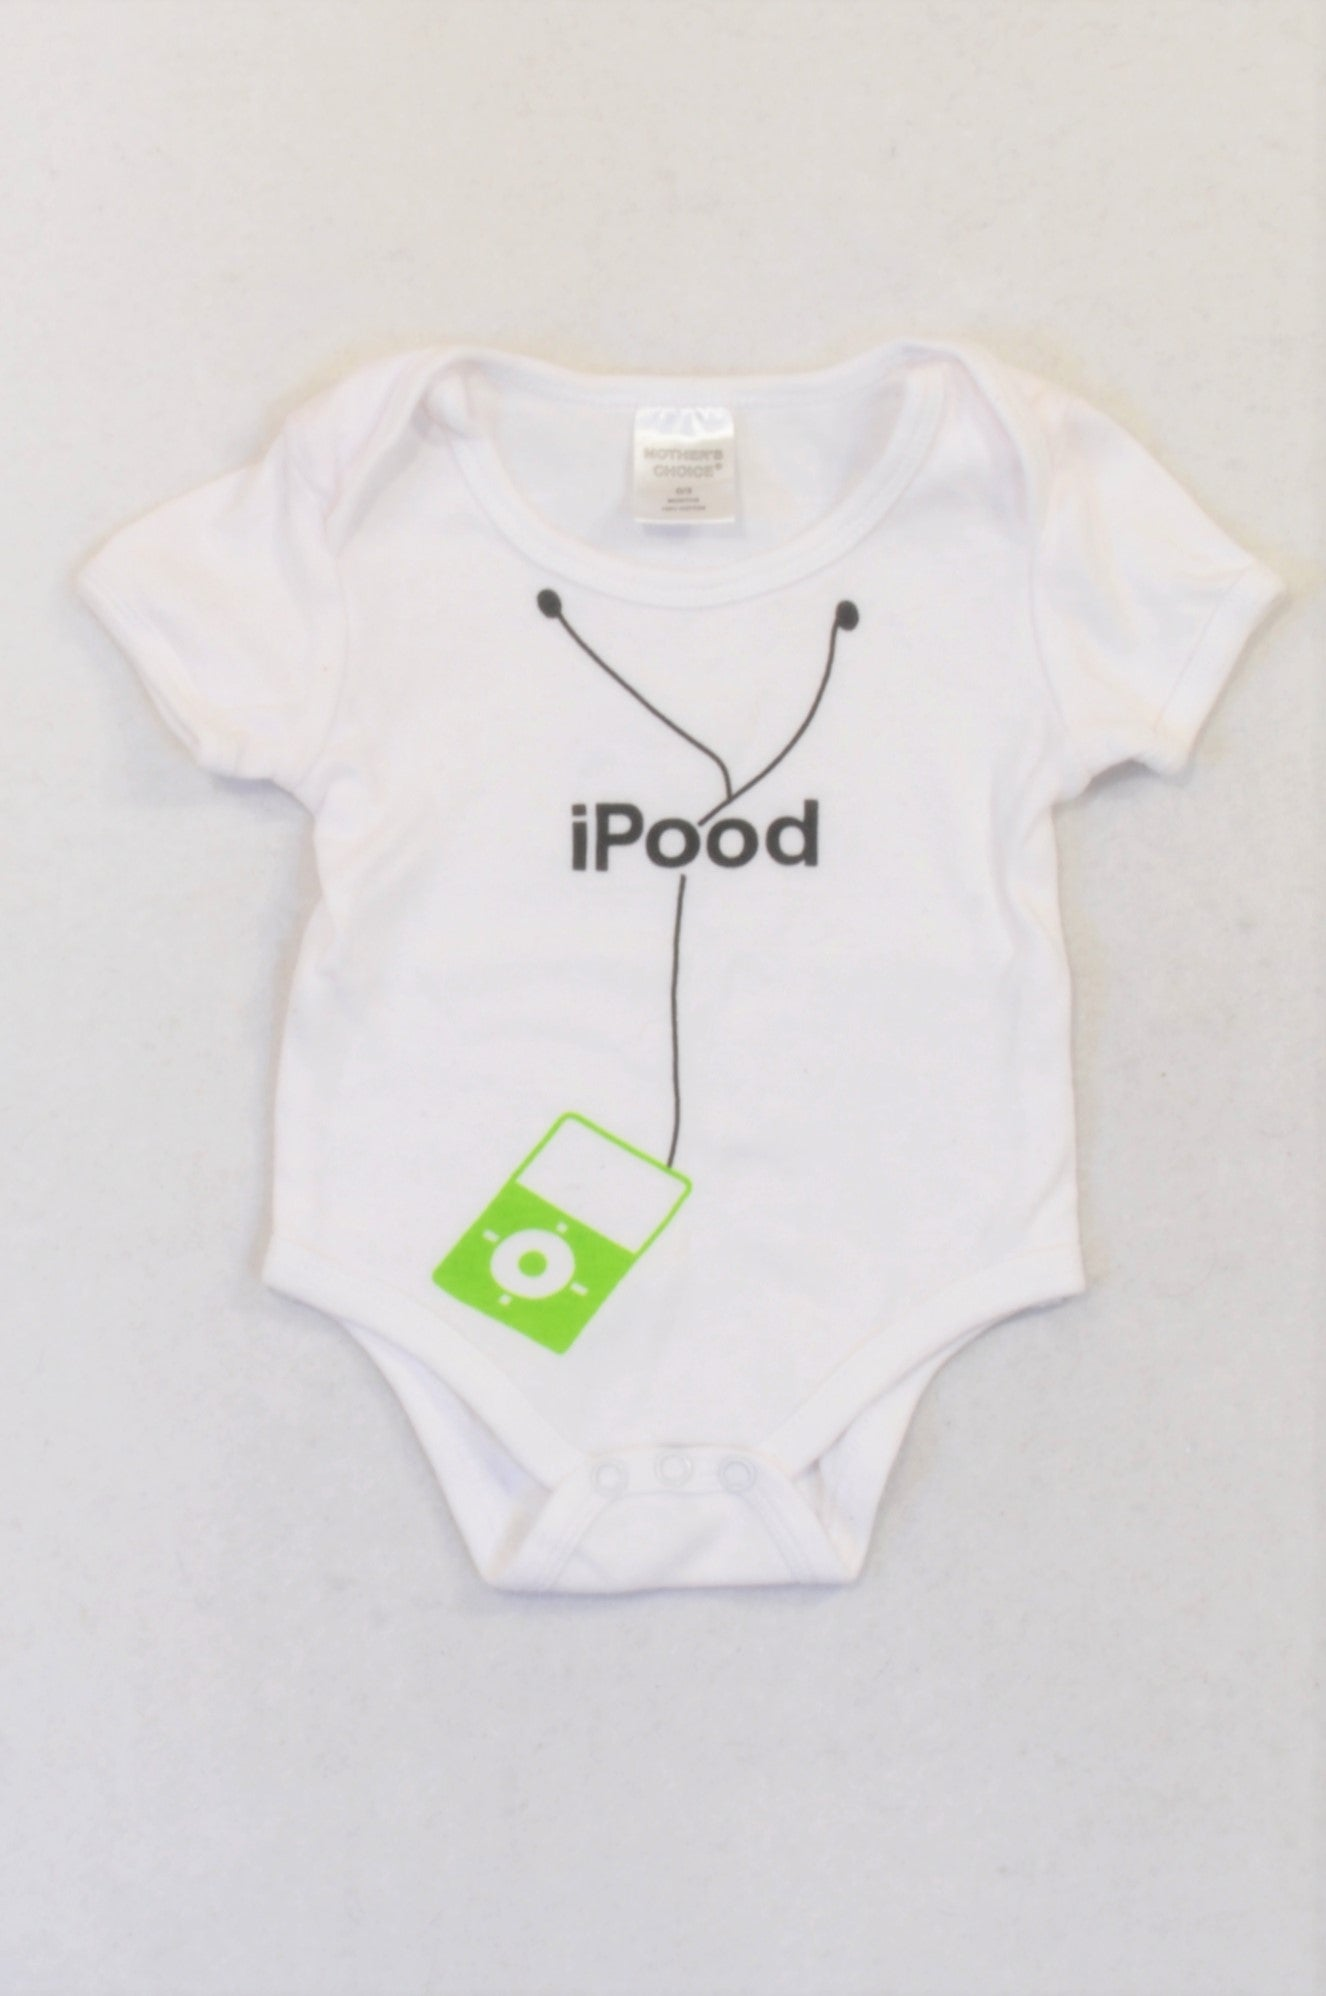 Mother's Choice White Ipood Baby Grow Unisex 0-3 months